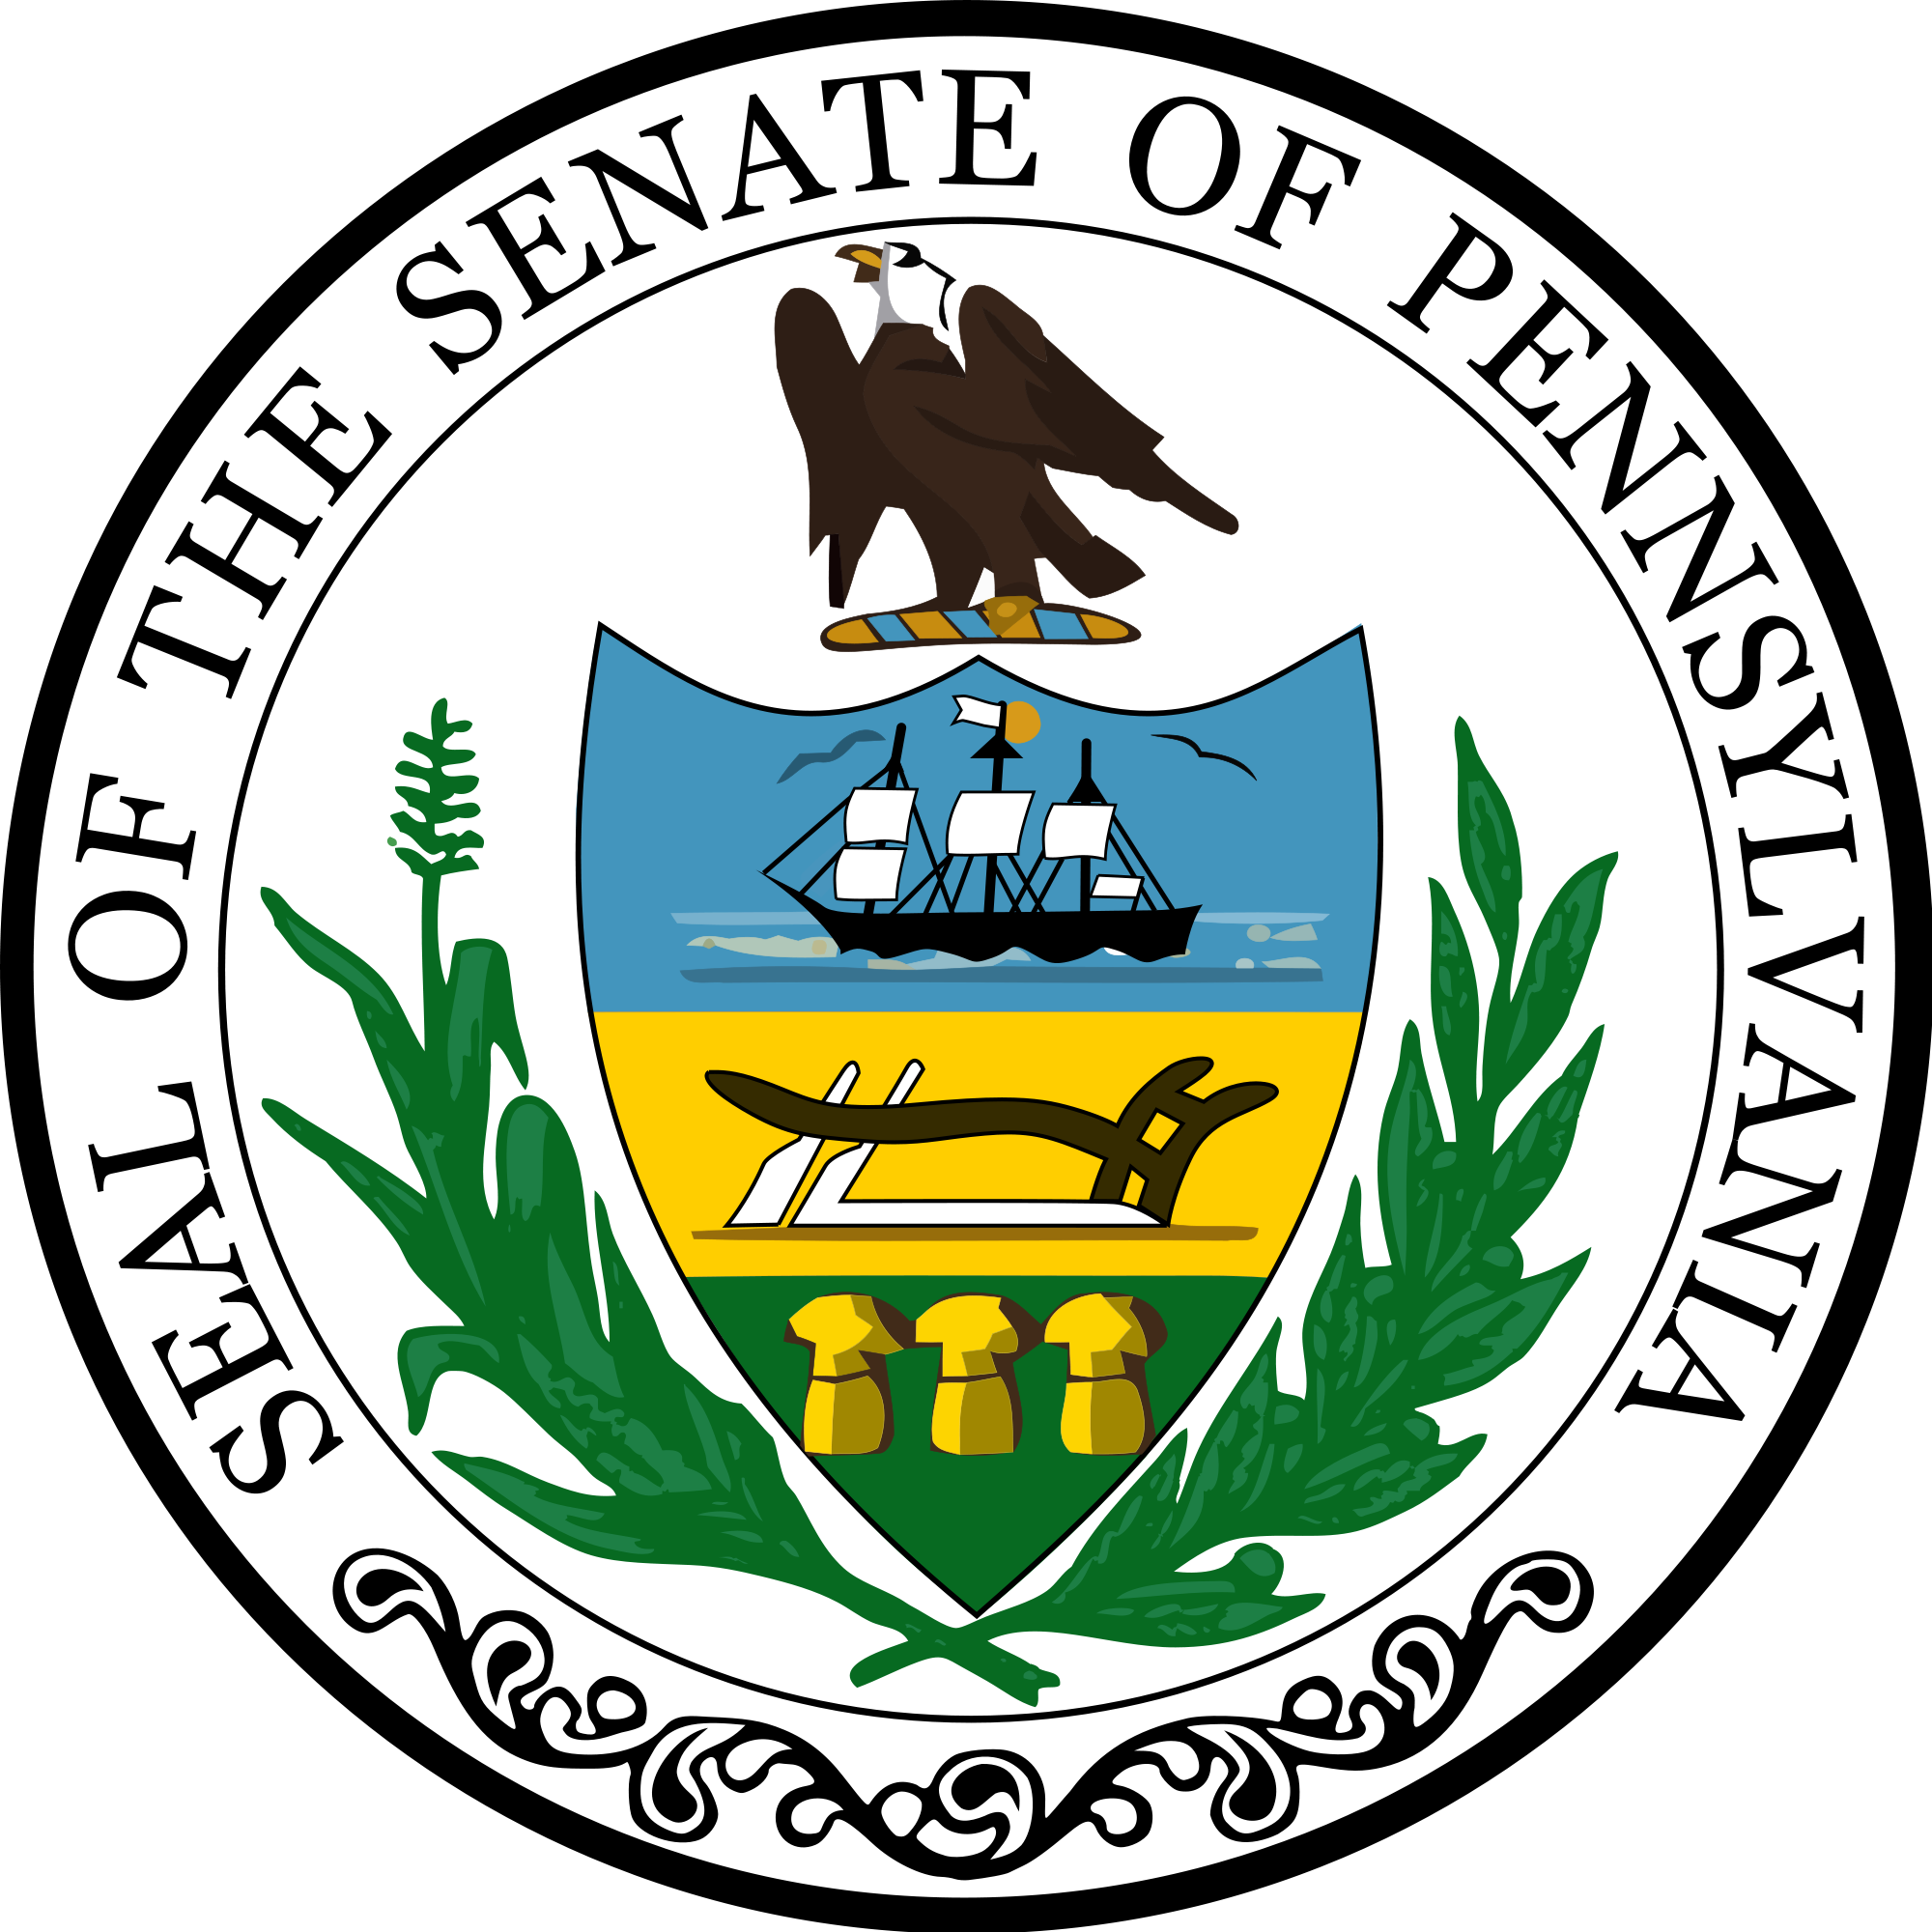 2000px-Seal_of_the_Senate_of_Pennsylvania.png